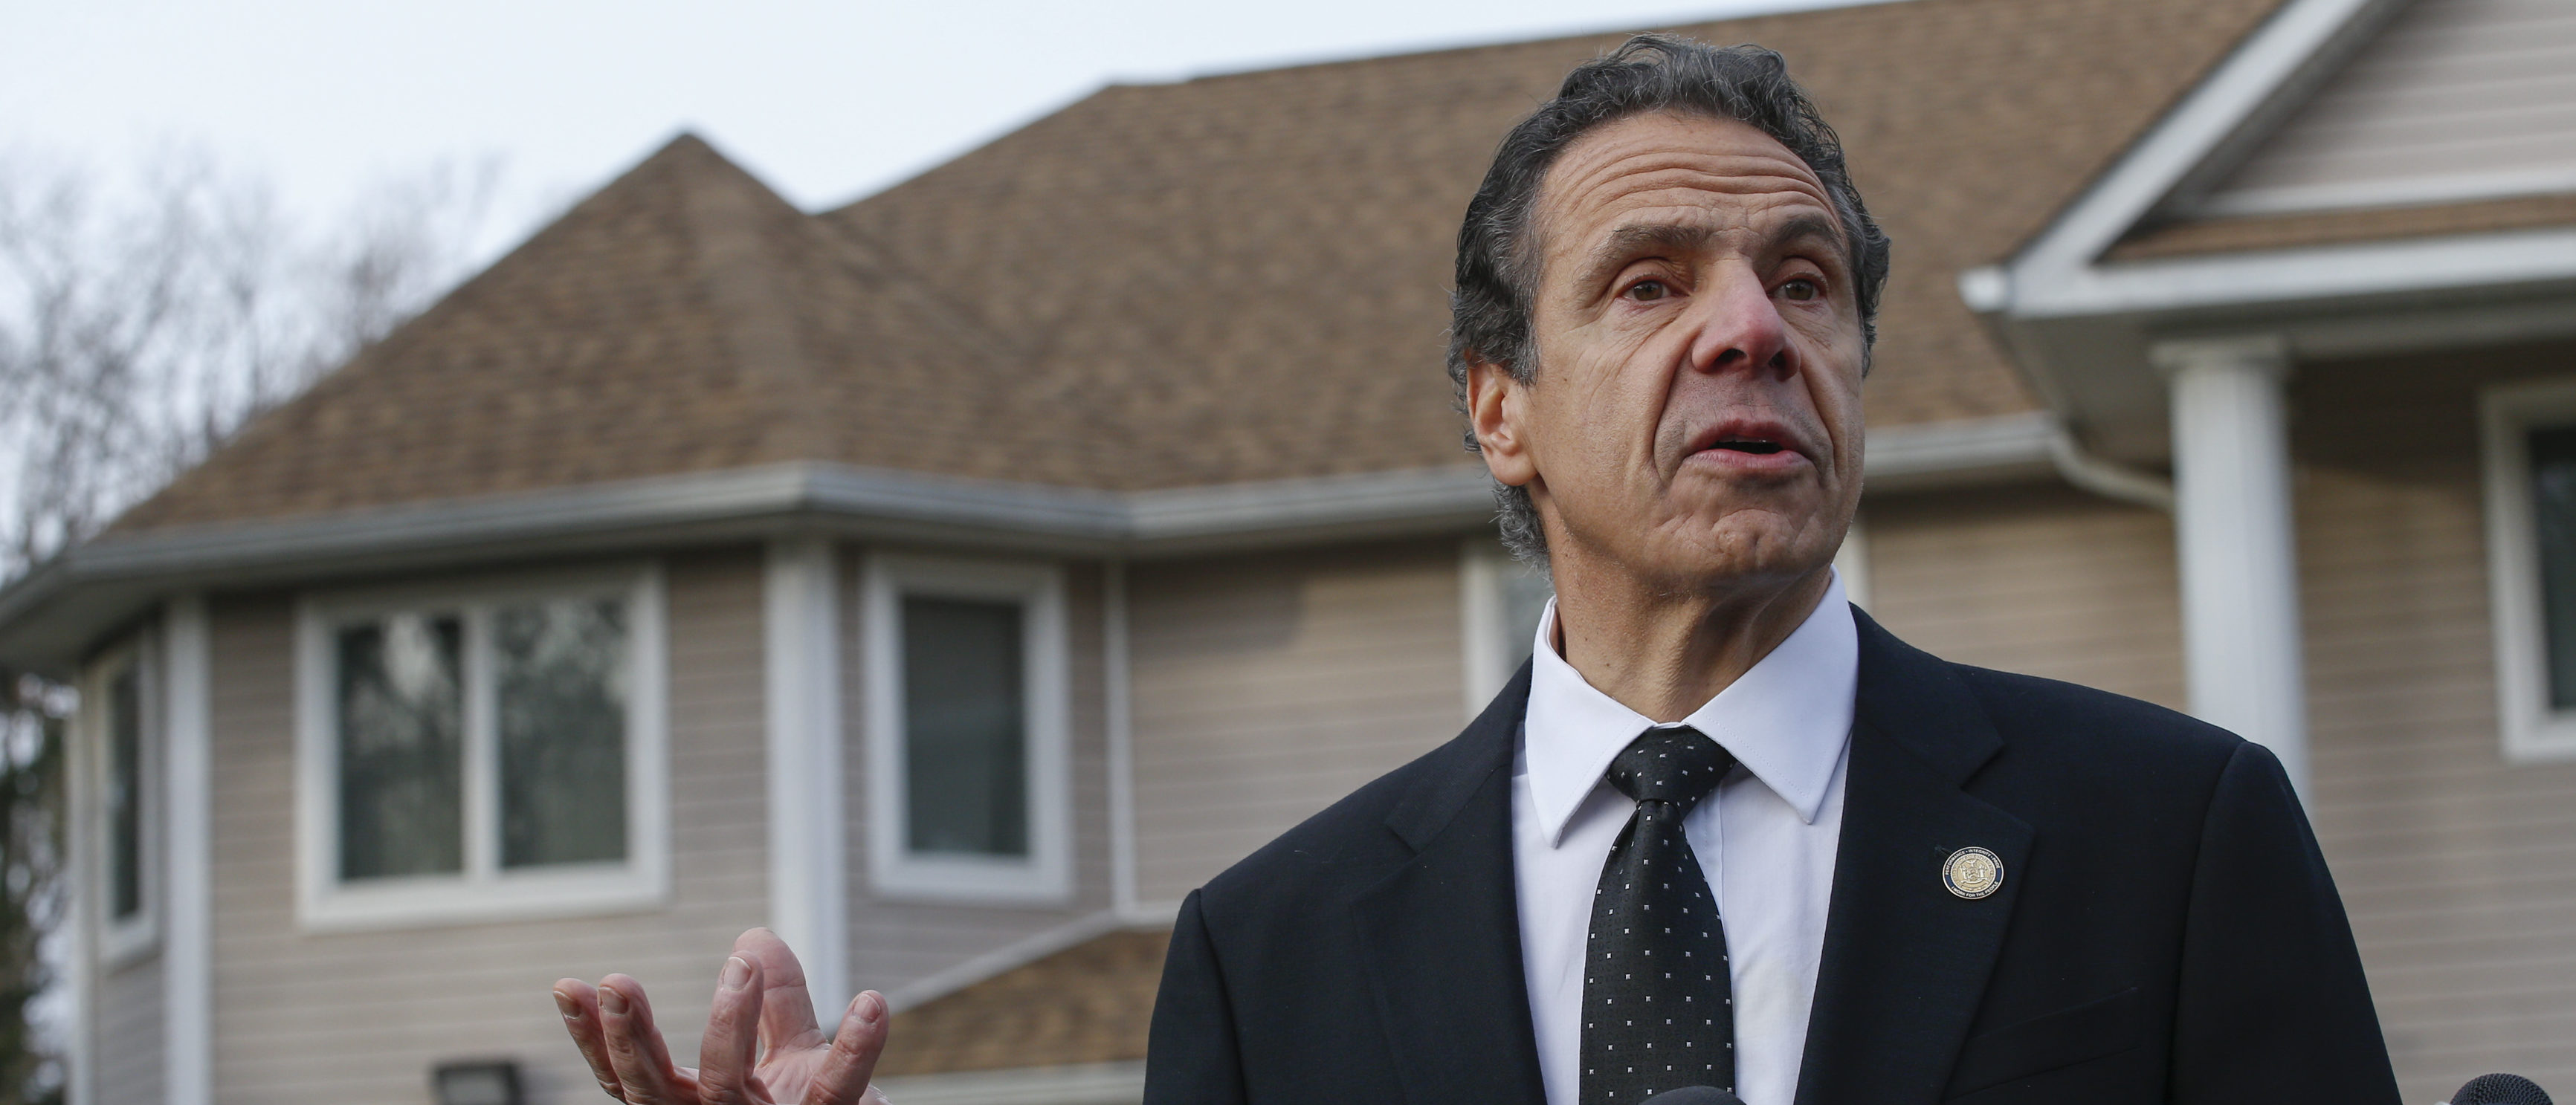 New York Governor Andrew Cuomo speaks to the media outside the home of rabbi Chaim Rottenbergin Monsey, in New York on December 29, 2019. (KENA BETANCUR/AFP via Getty Images)